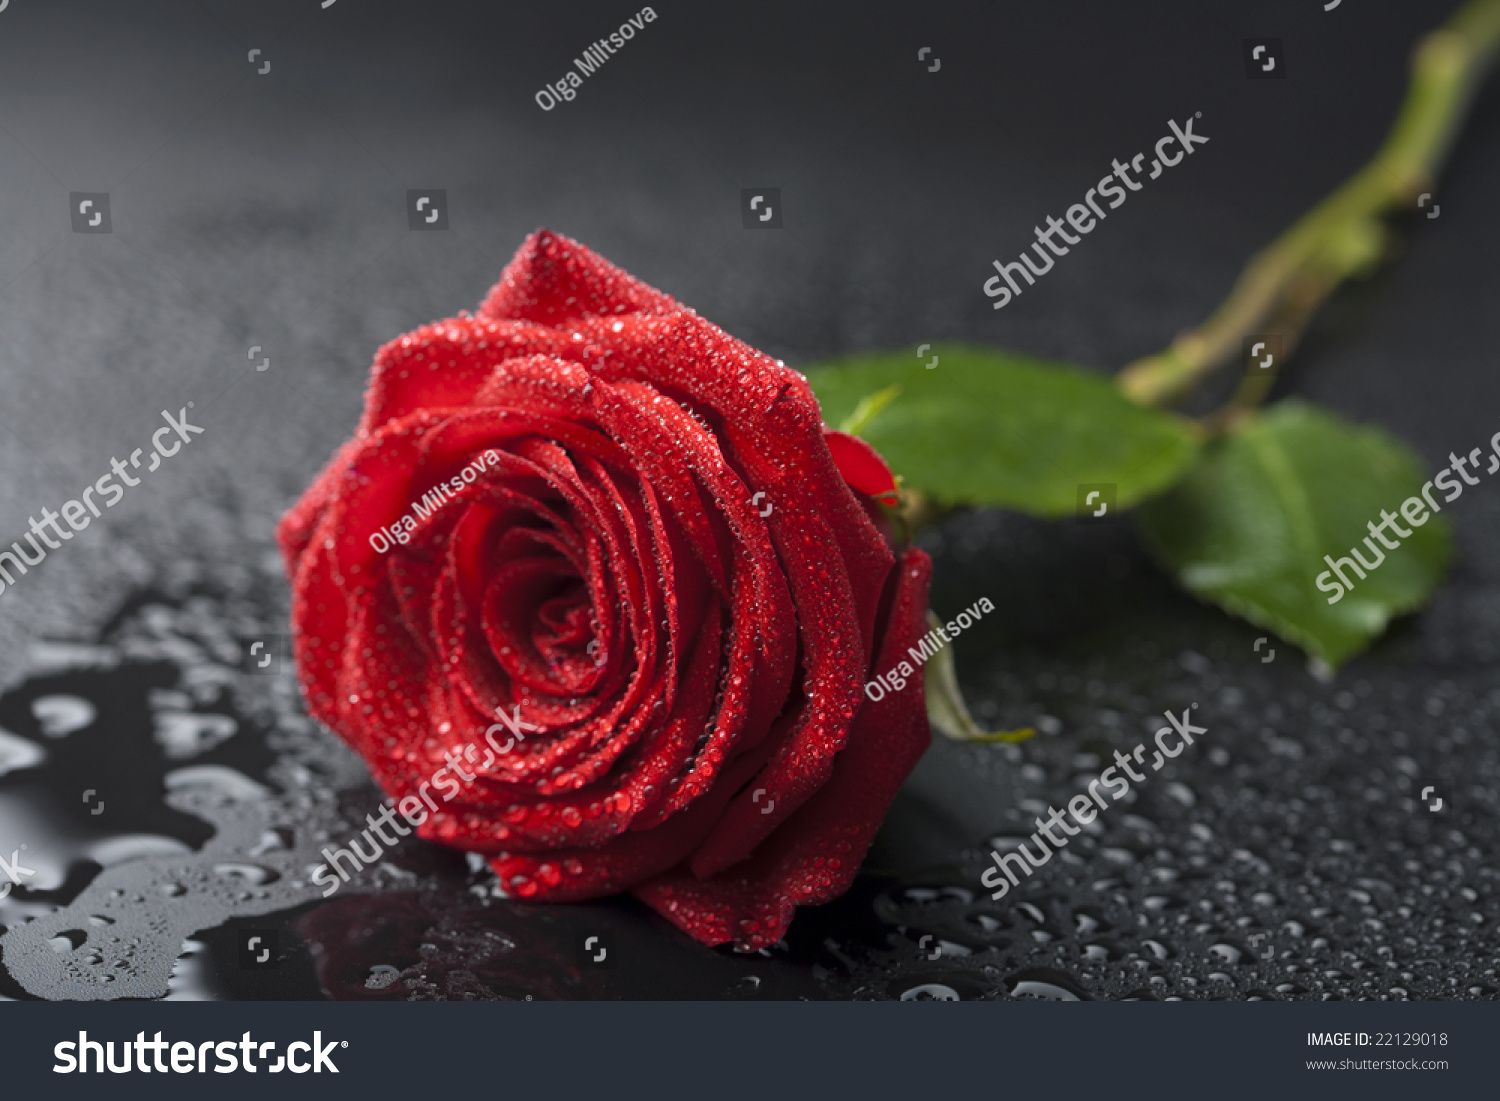 Beautiful red rose water droplets over stock photo royalty free beautiful red rose with water droplets over black background izmirmasajfo Choice Image